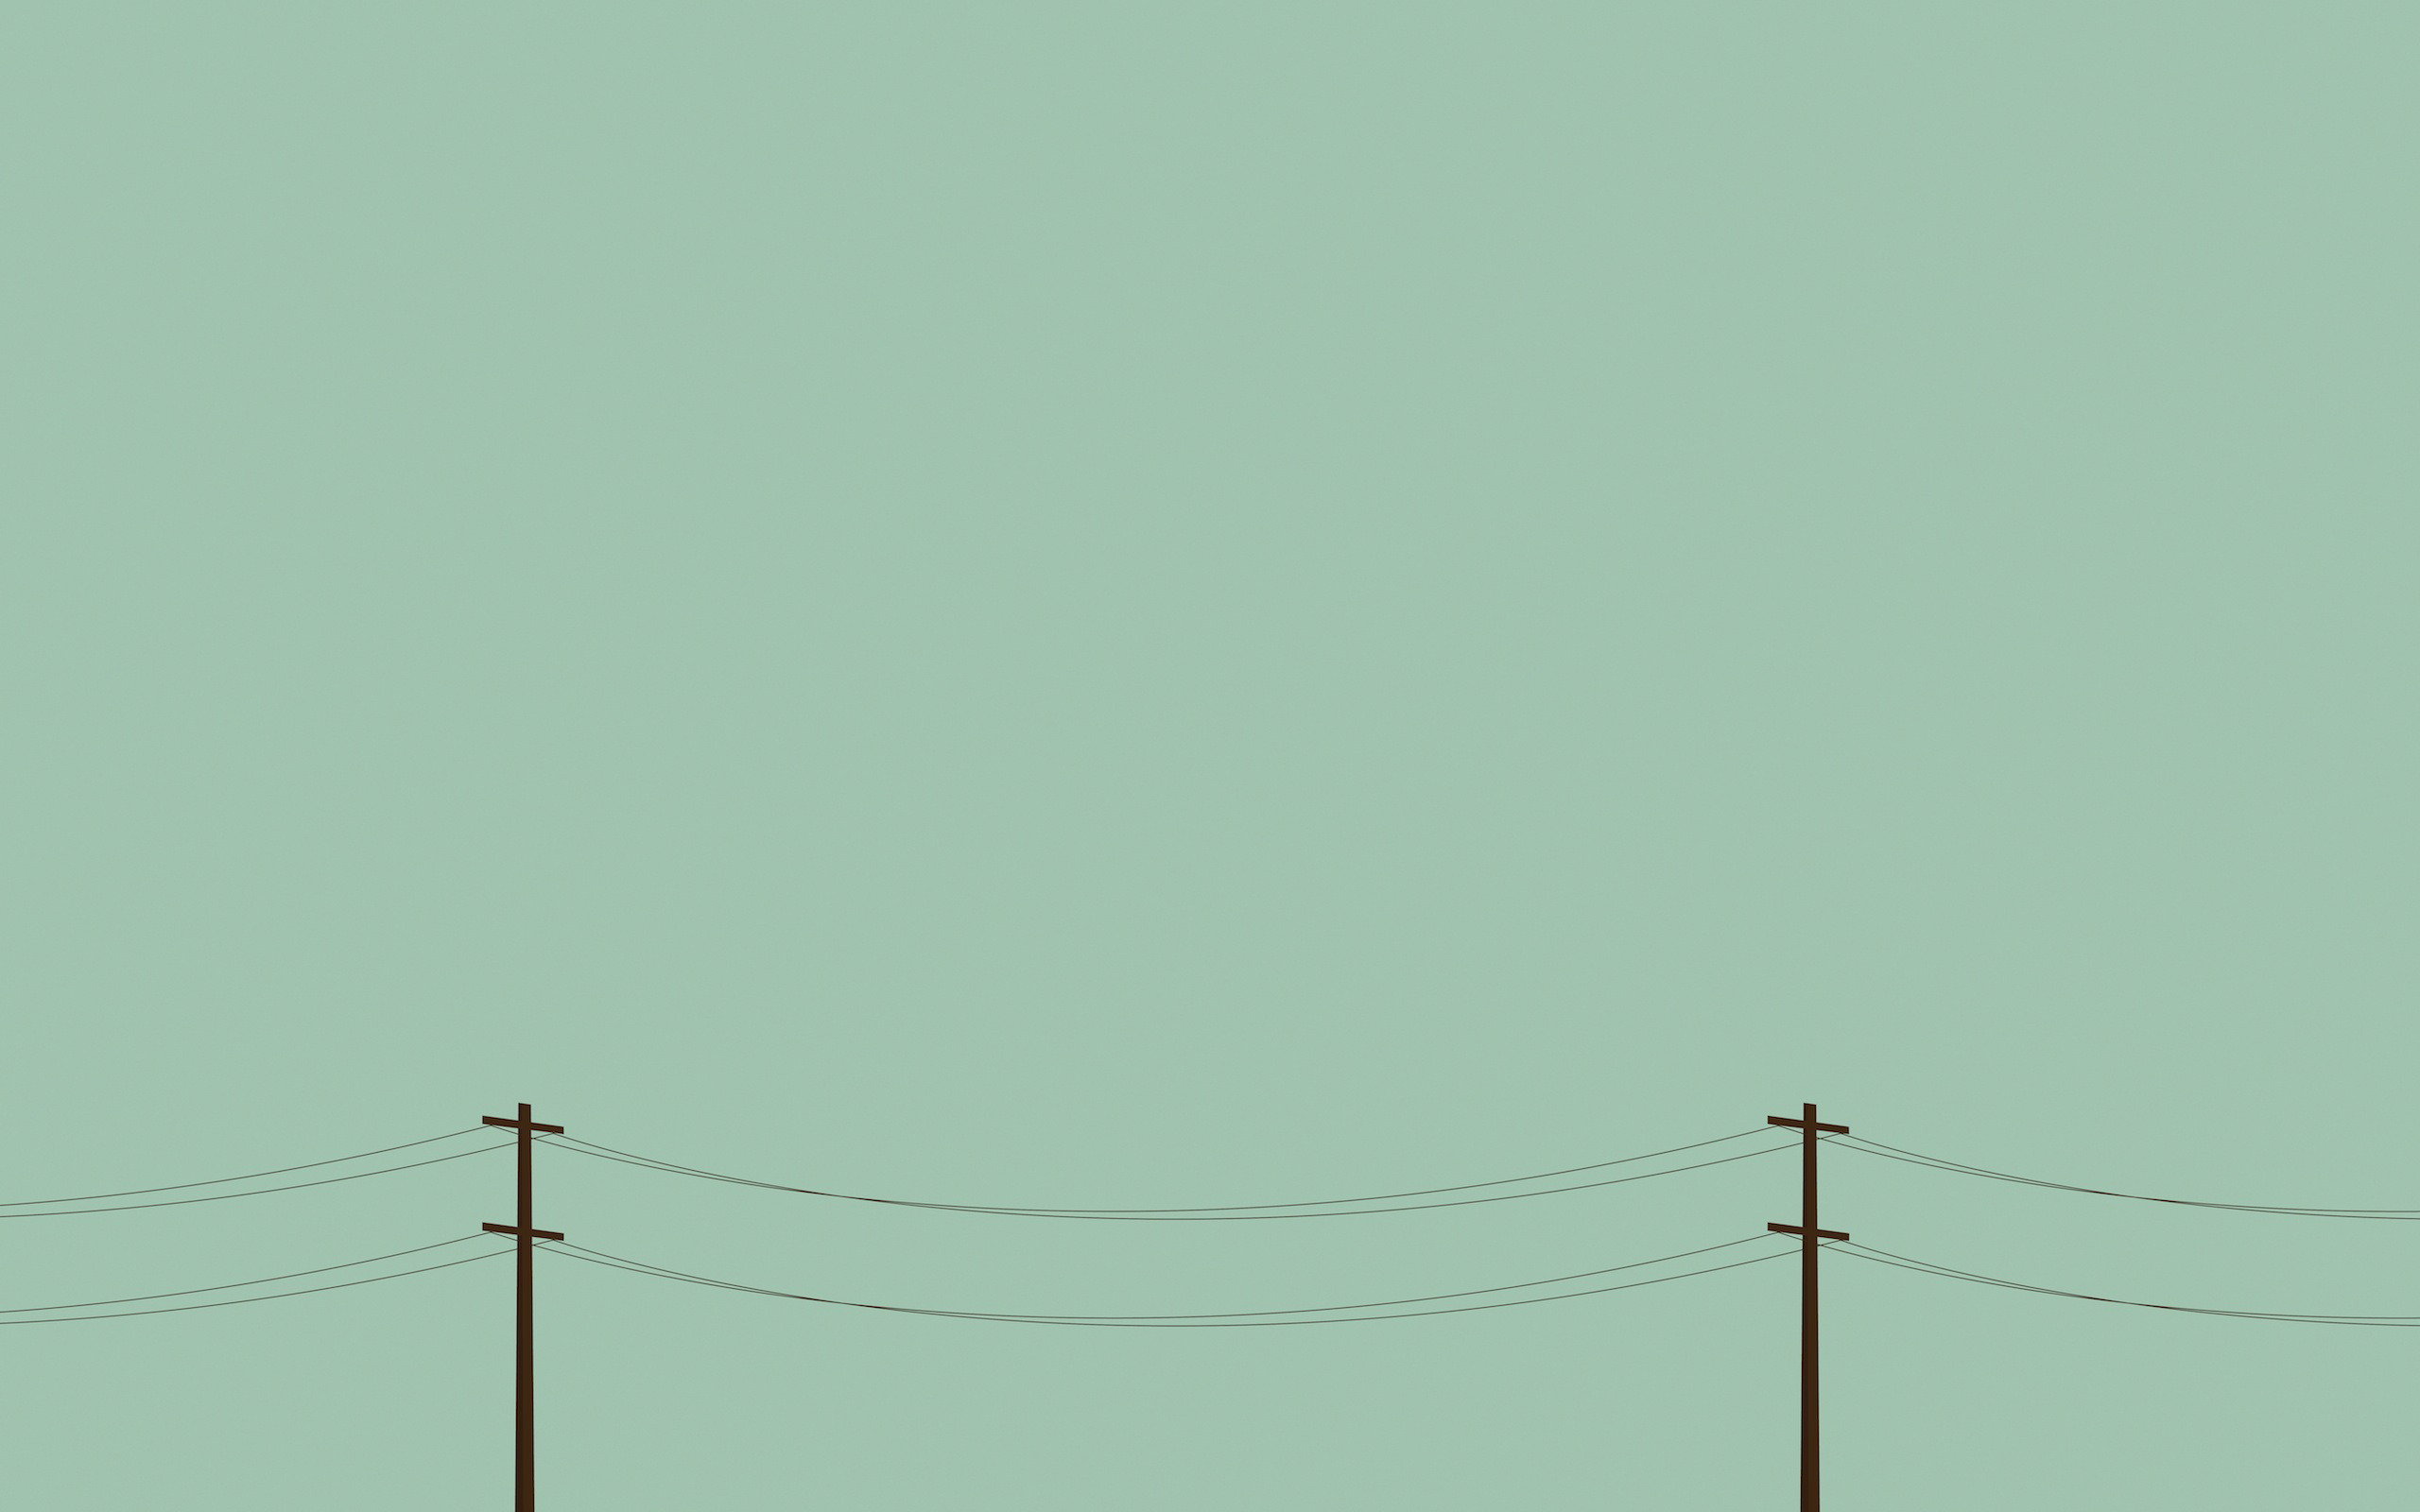 Minimalist Backgrounds